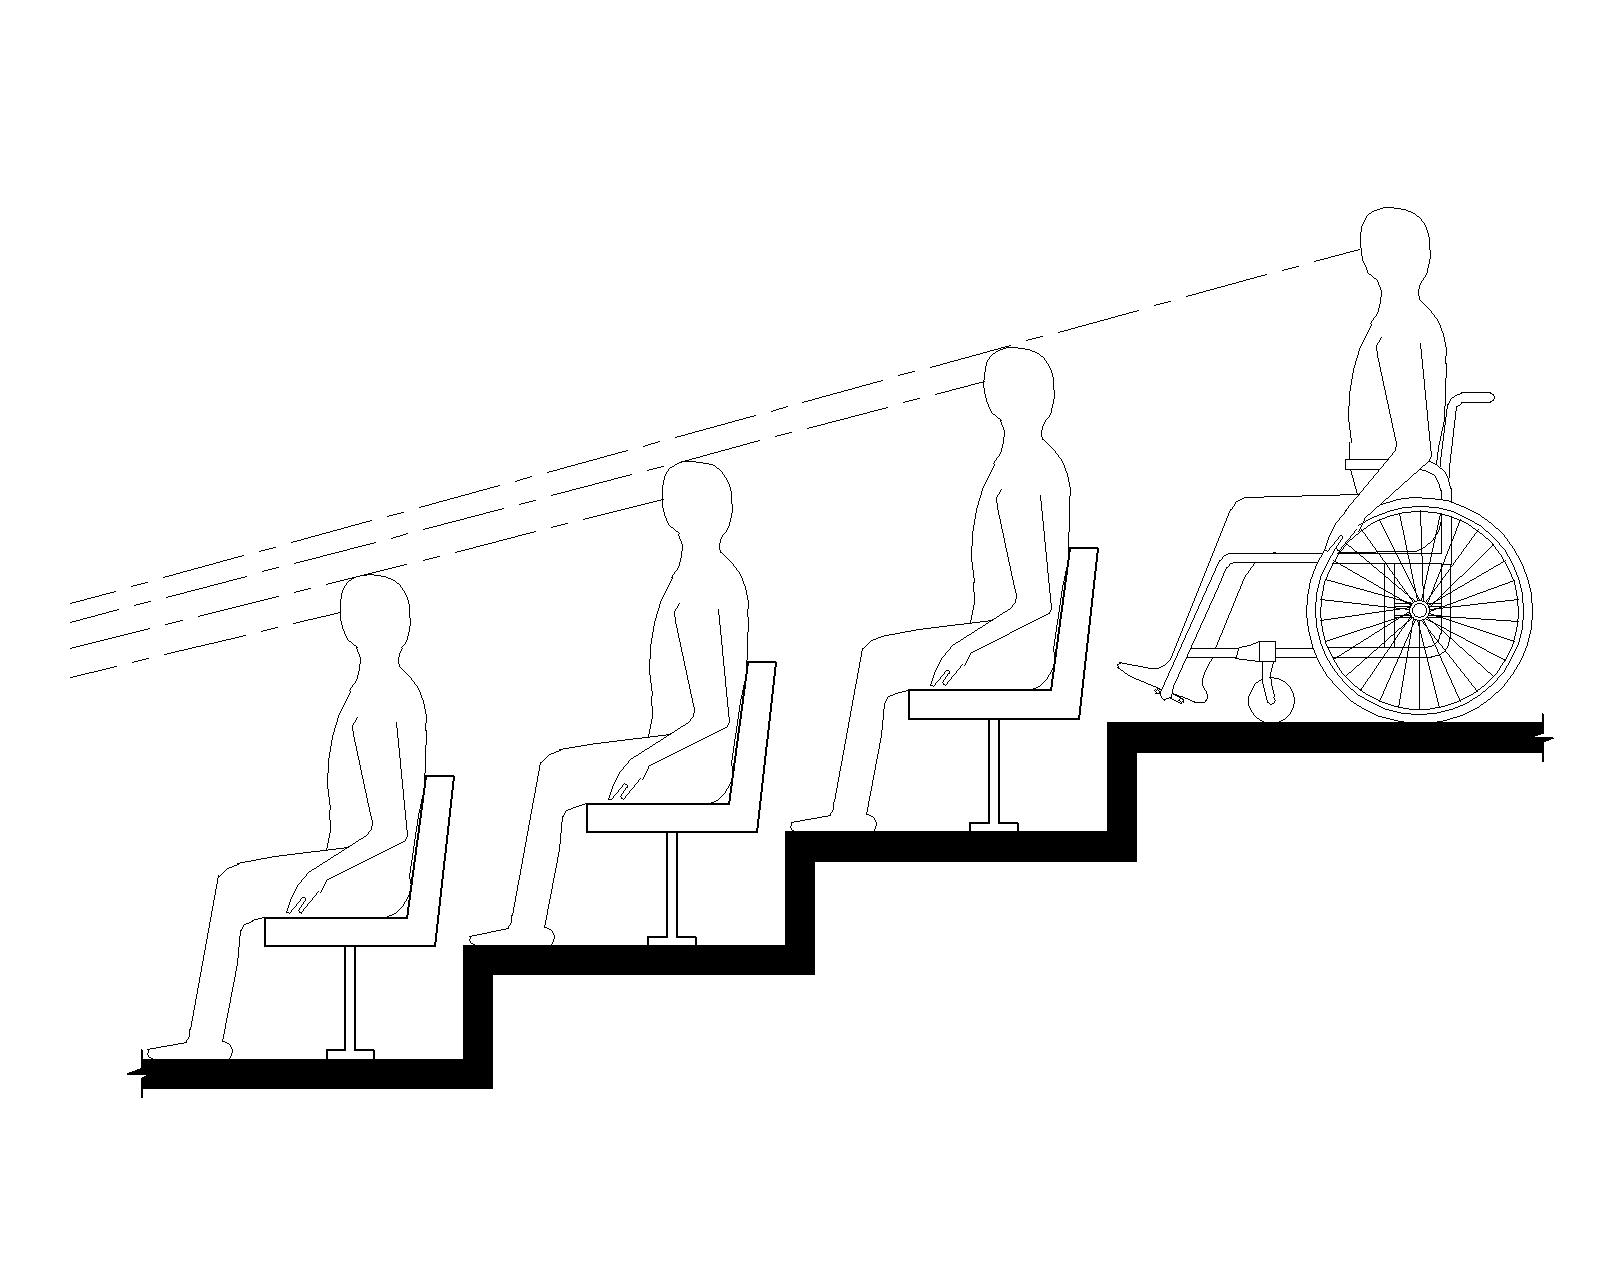 Elevation drawing shows a person using a wheelchair on an upper level of tiered seating having a line of sight over the heads of spectators seated in front.